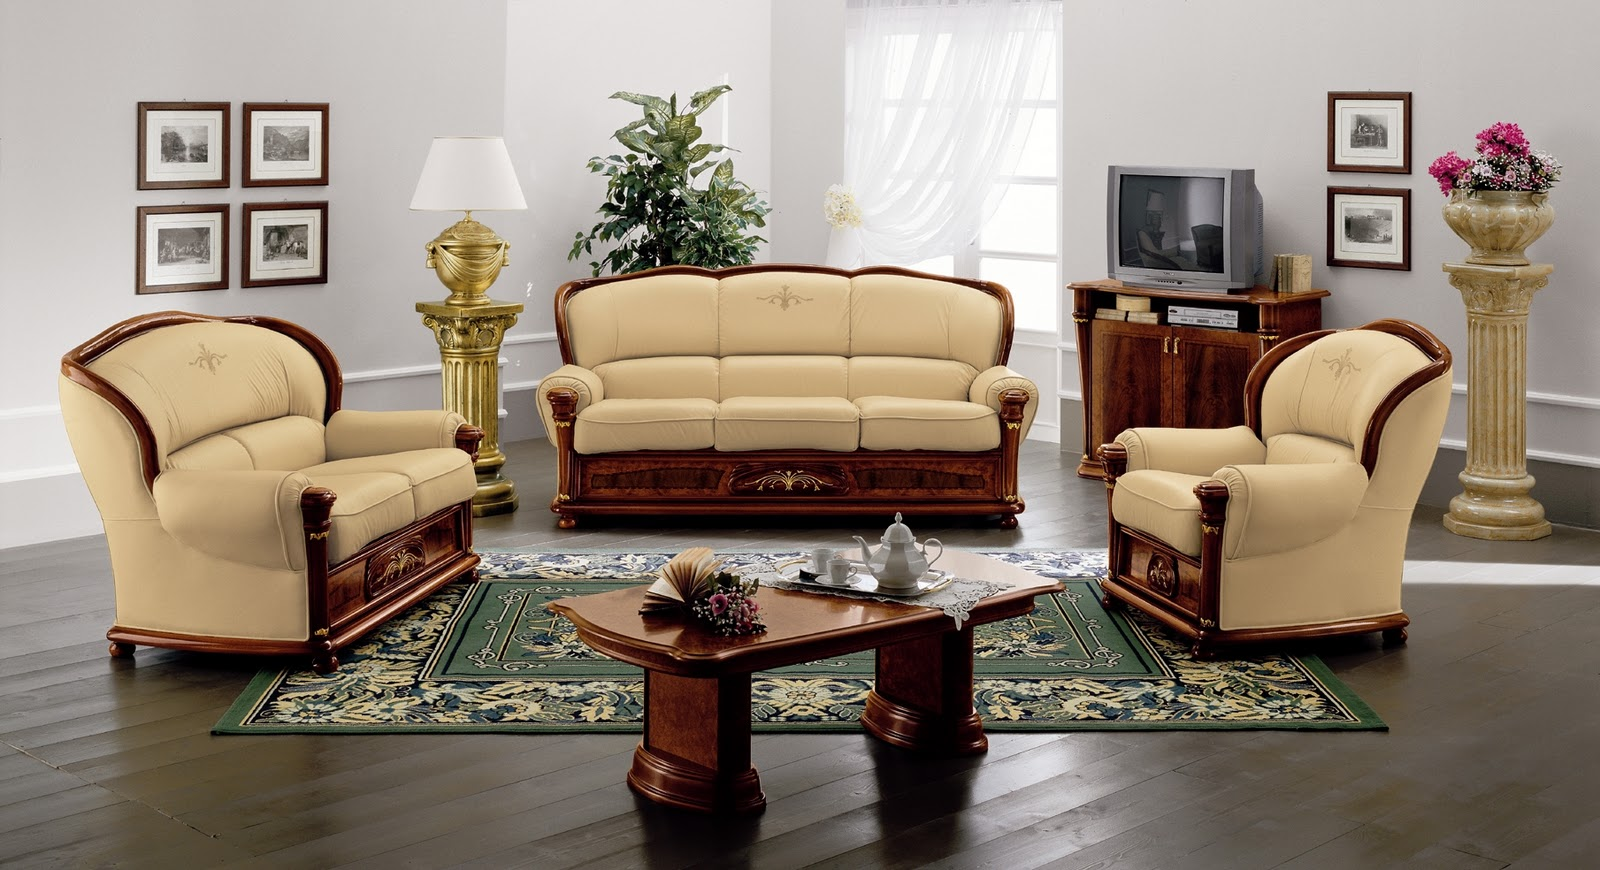 Living room sofa design photos living room interior designs for Latest sofa designs for living room